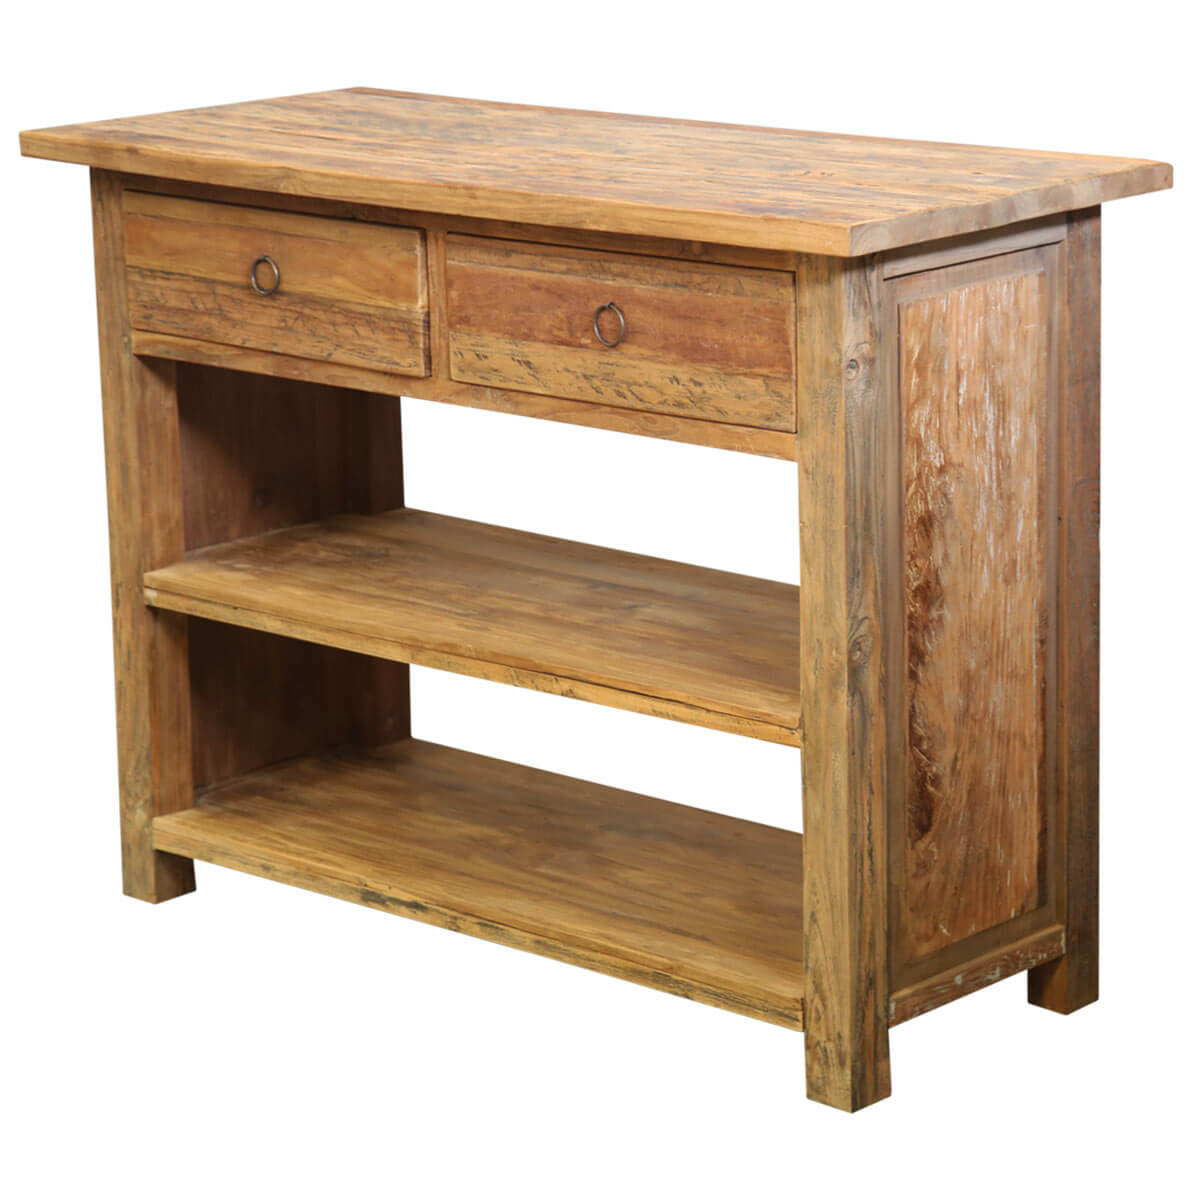 Lemont Simple Solid Teak Wood One Shelf 2 Drawer Console Table